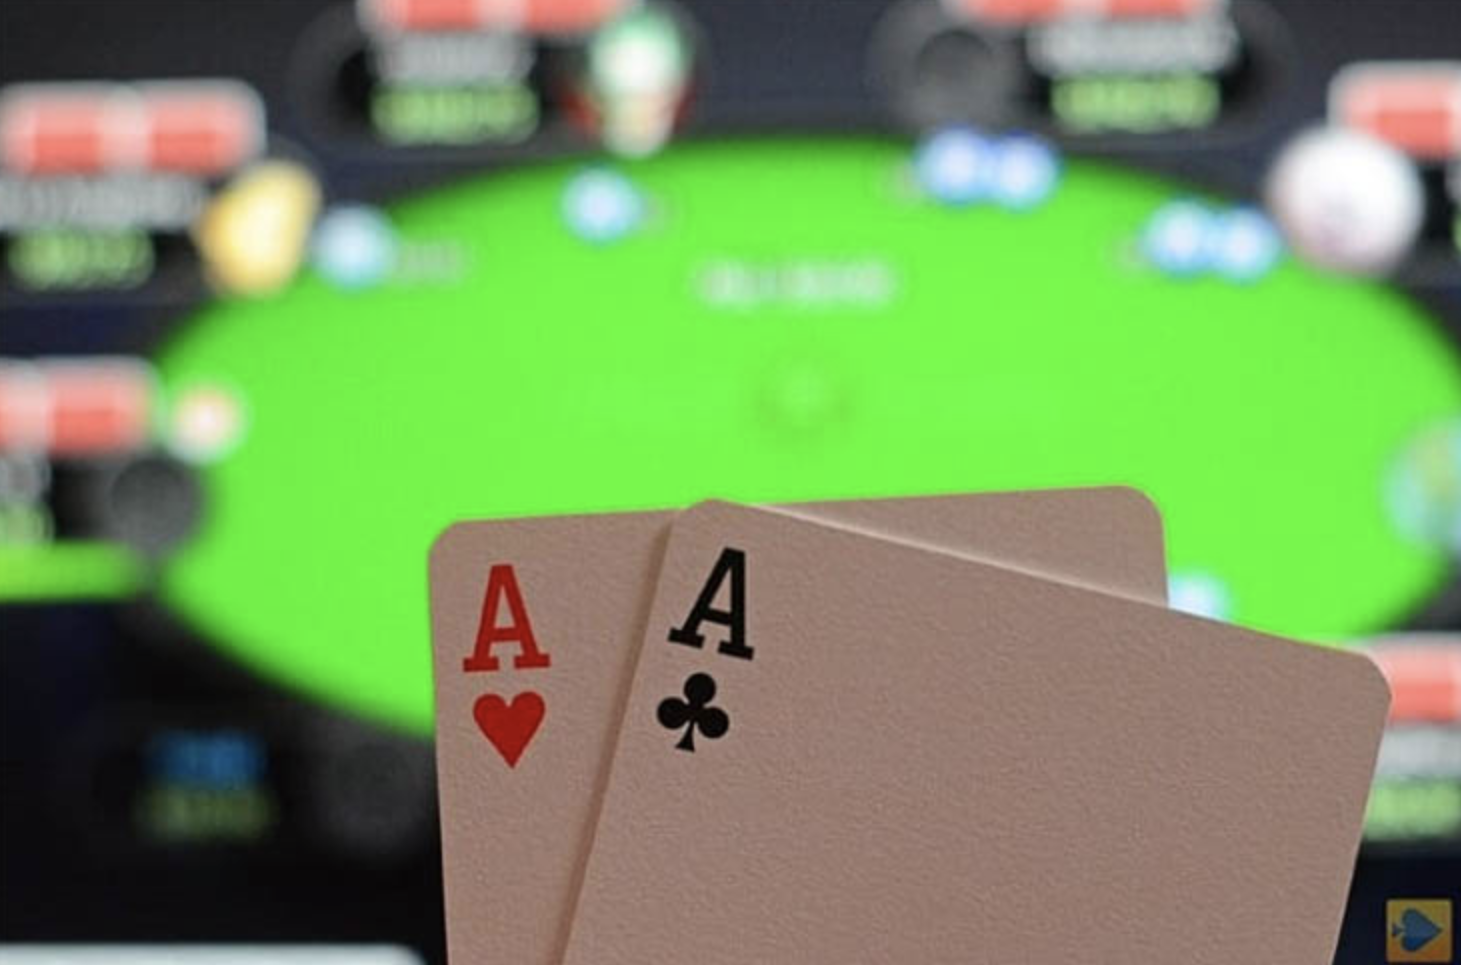 There are many games in the online casinos so you can select the games of your choice.